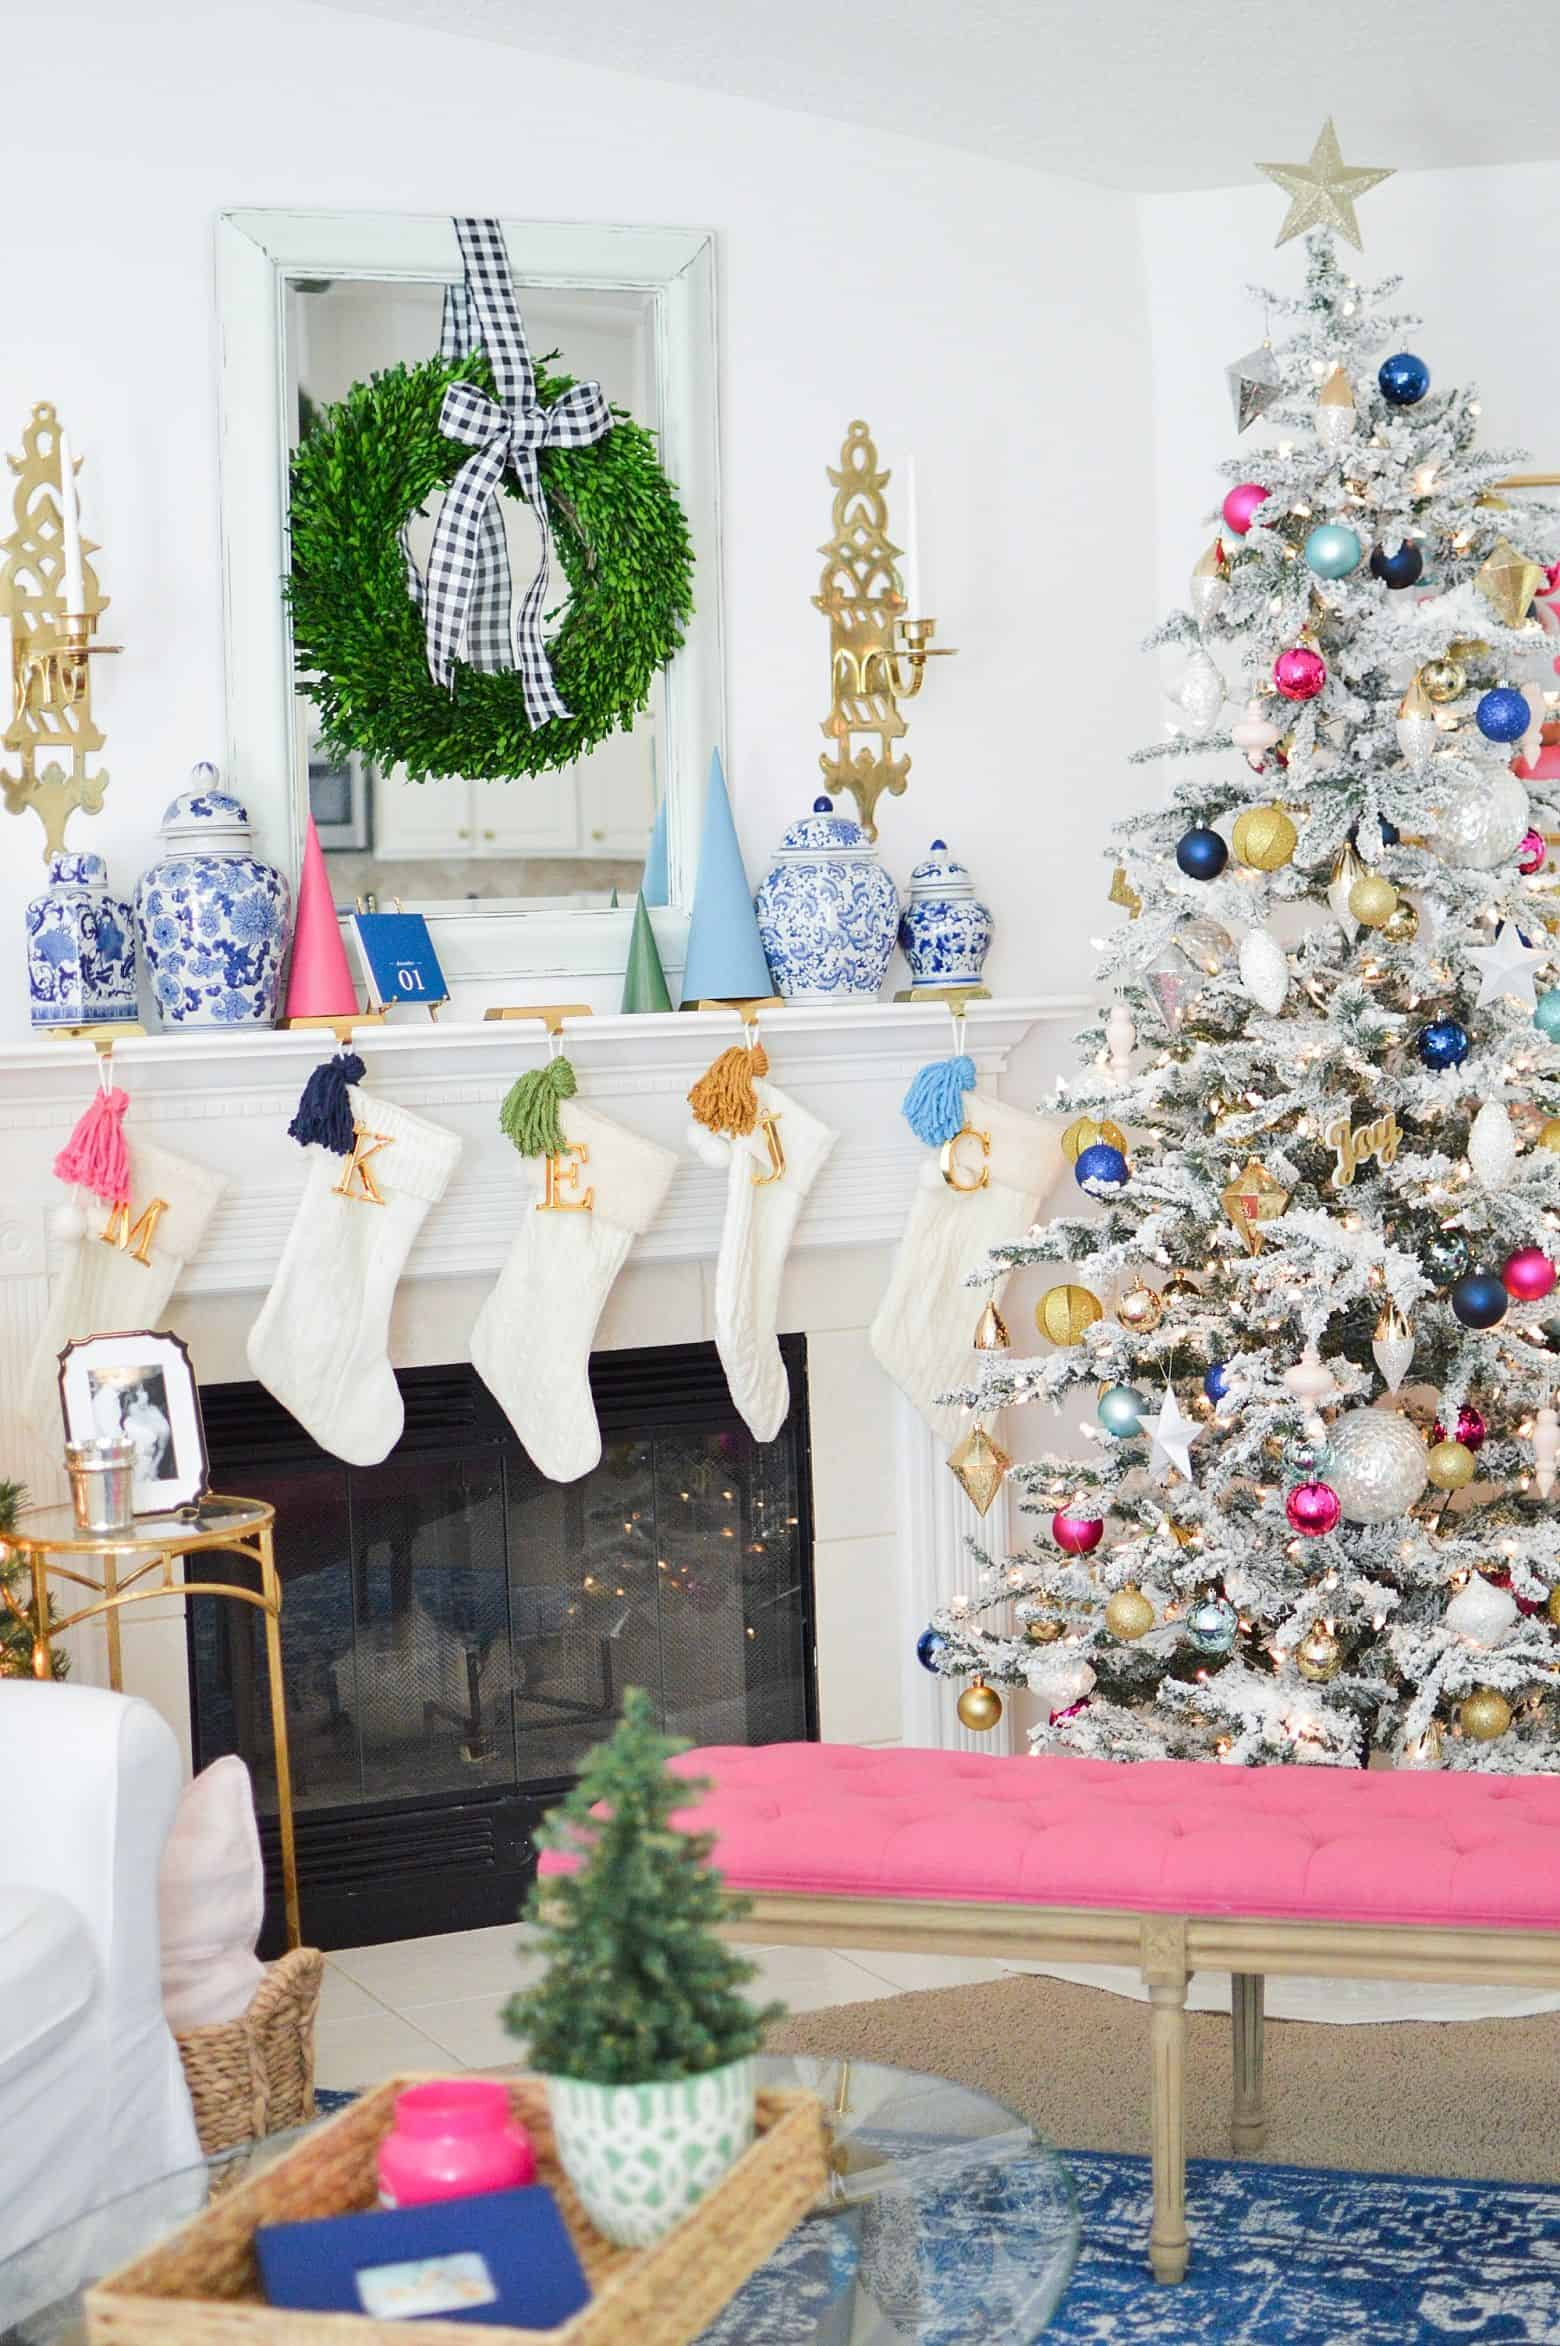 How To Decorate The Fireplace Mantel For Christmas